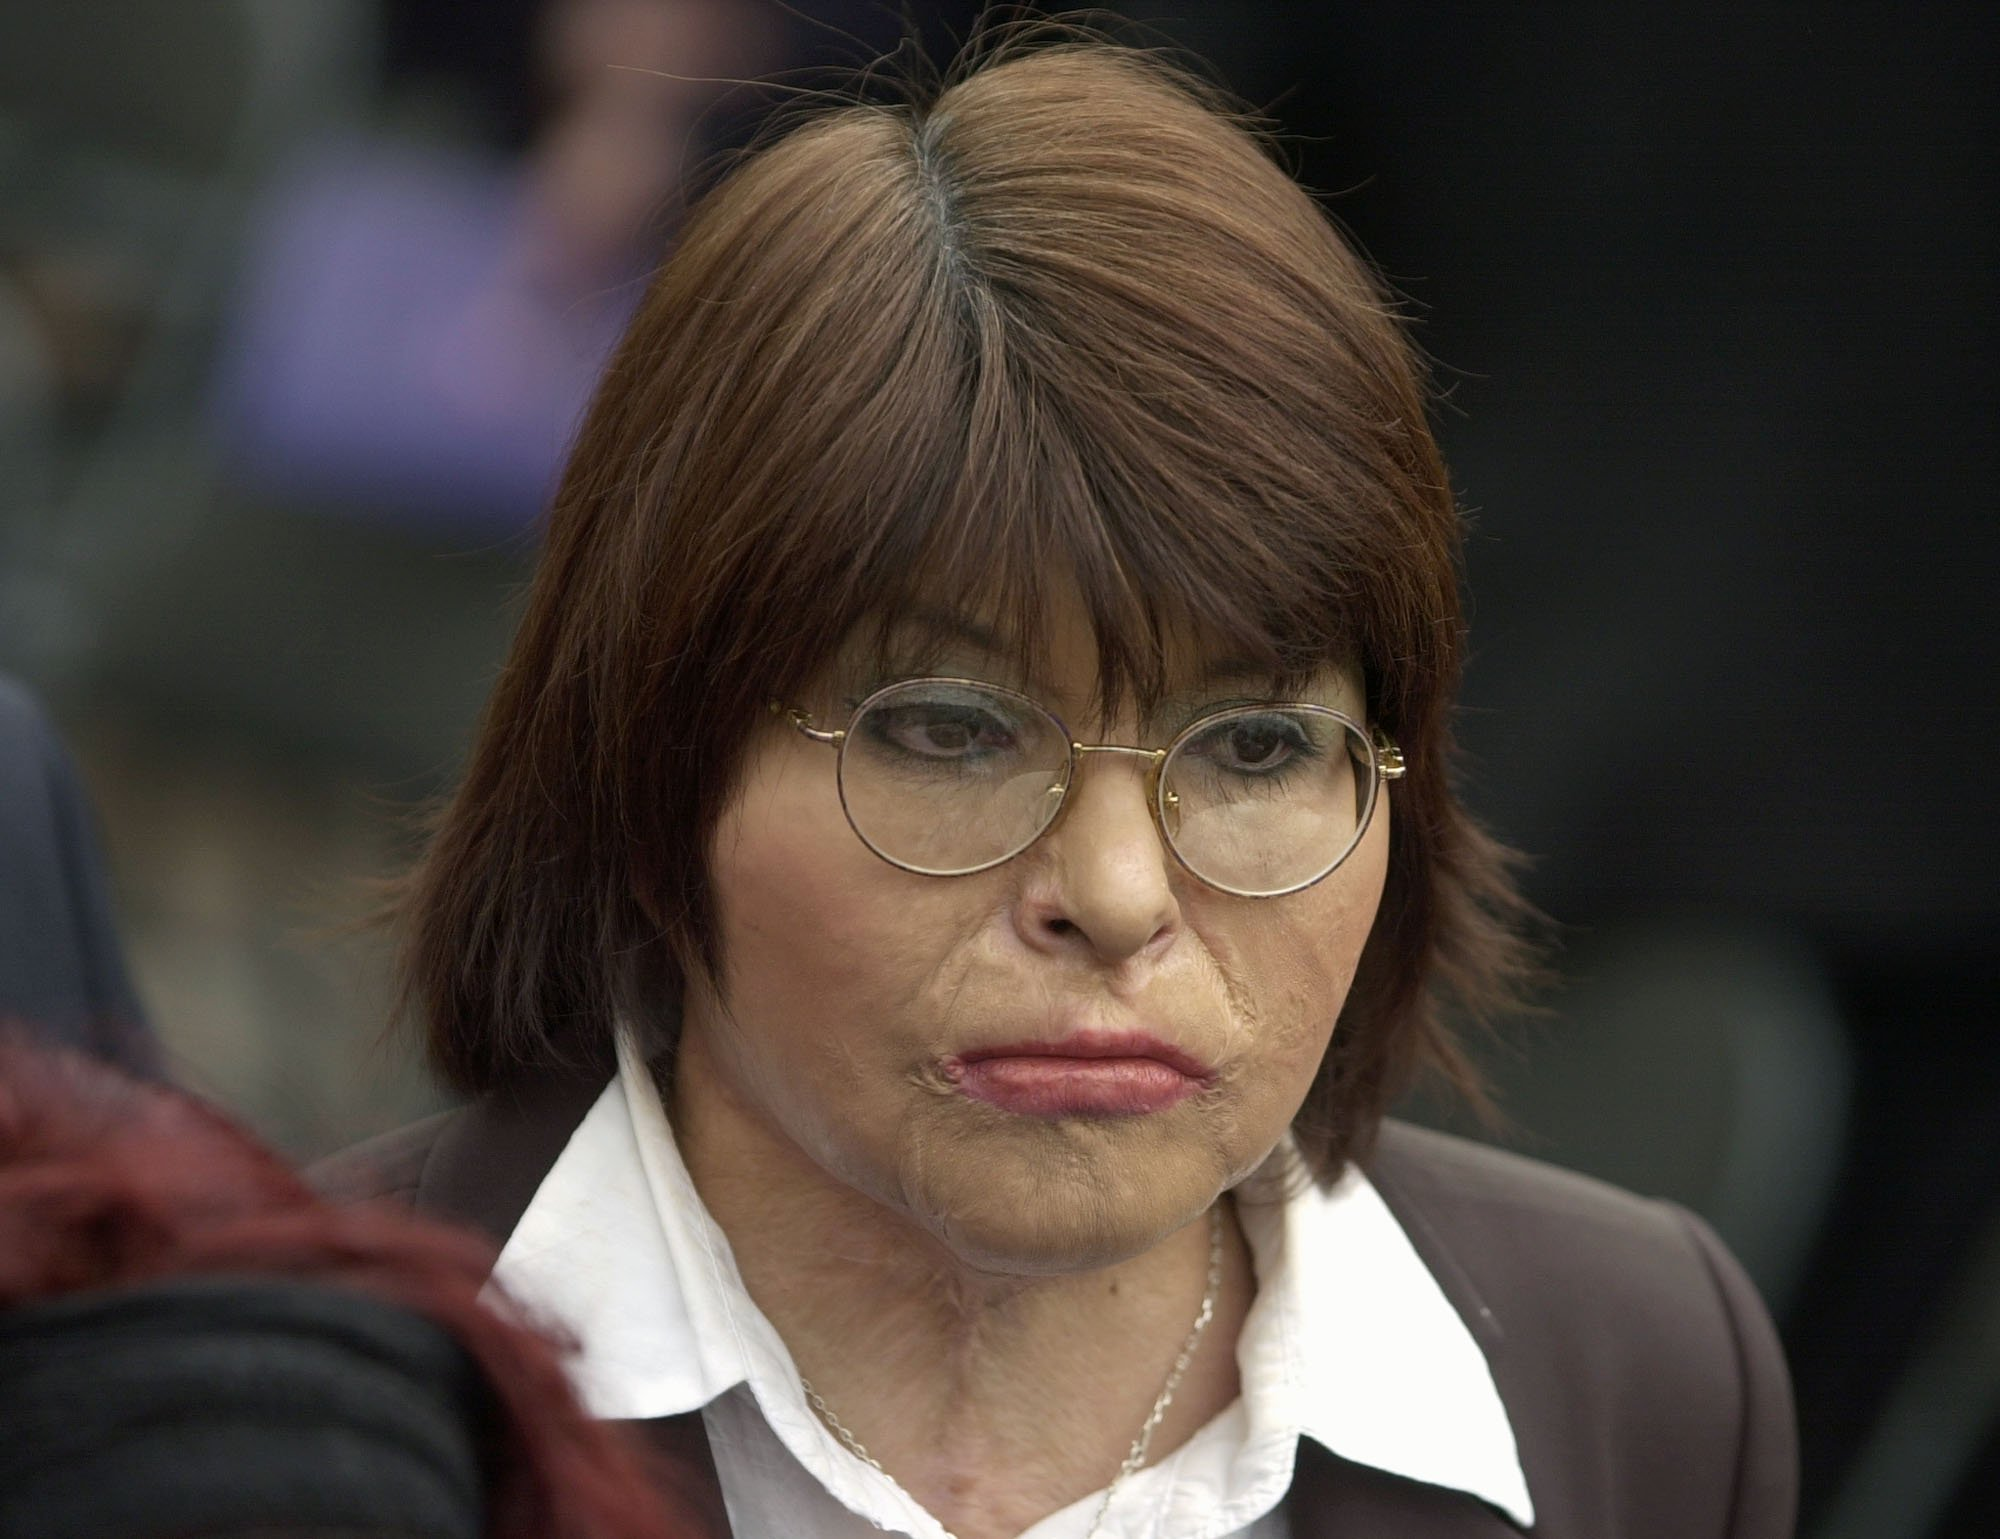 Chilean Carmen Gloria Quintana attends a ceremony marking the 30th anniversary of the Sept. 11 military coup lead by Gen. Augusto Pinochet at the government palace La Moneda, in Santiago on Sept. 11, 2003.